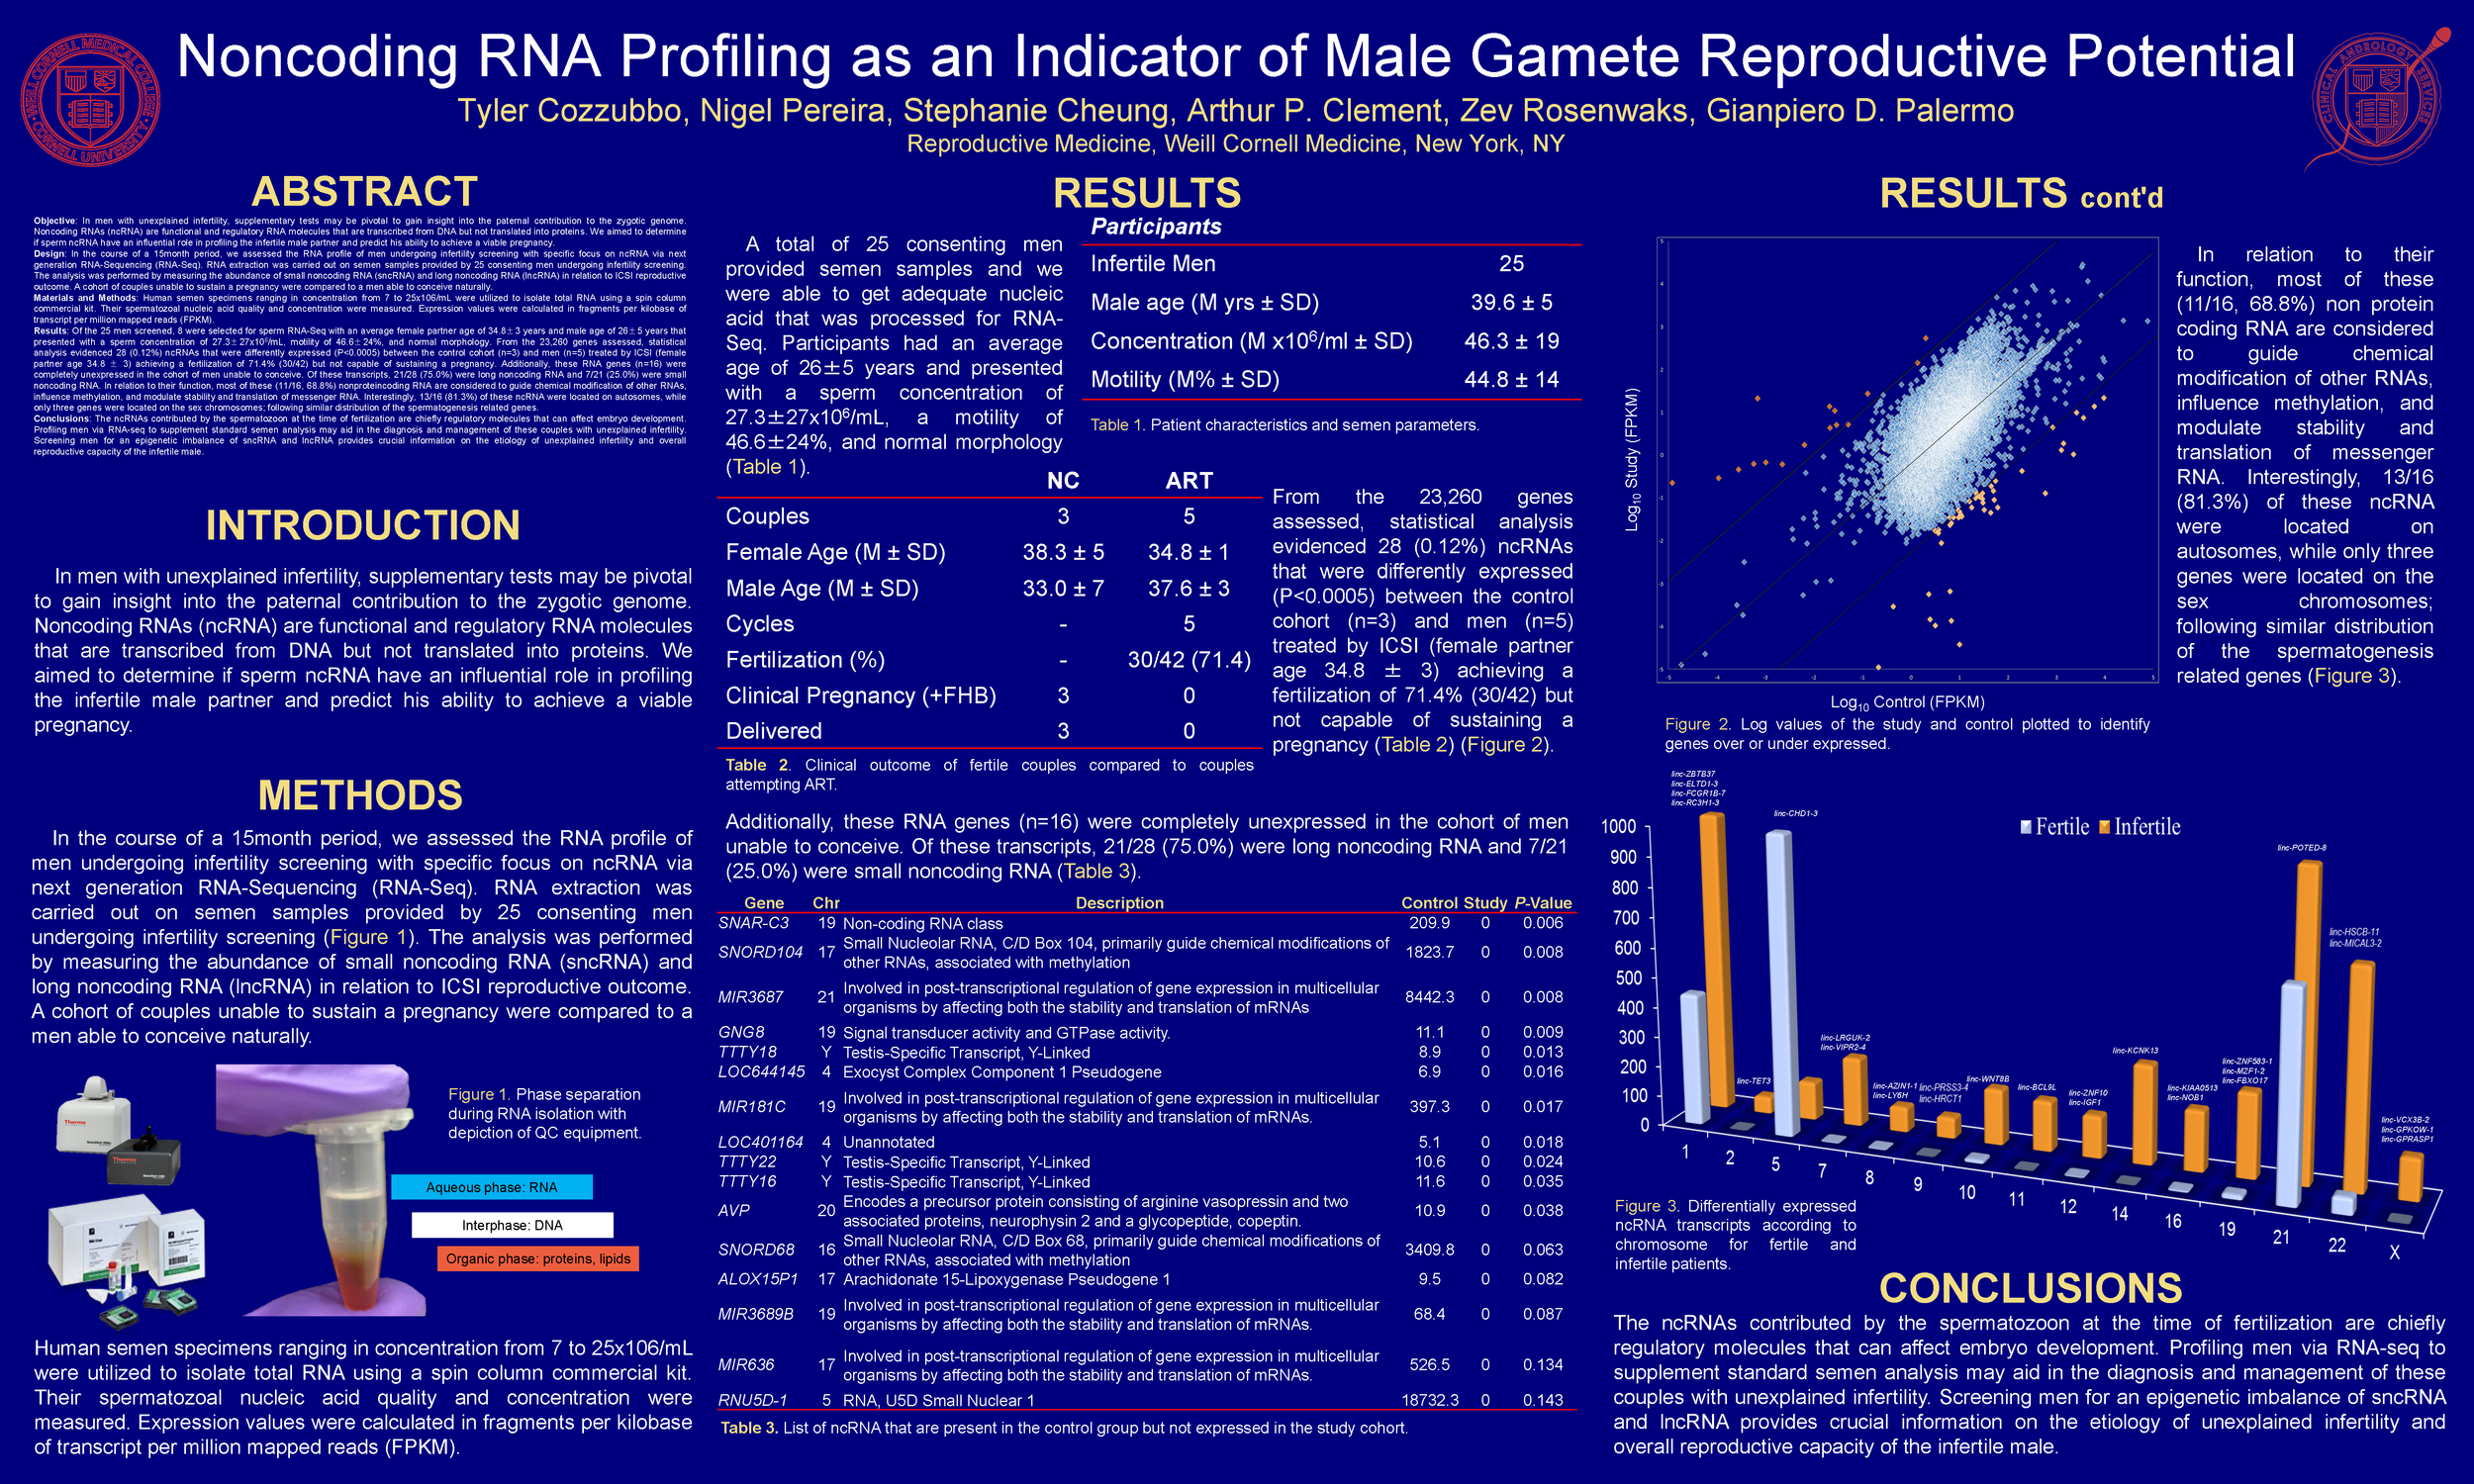 Noncoding RNA Profiling as an Indicator of Male Gamete Reproductive Potential Poster3.png